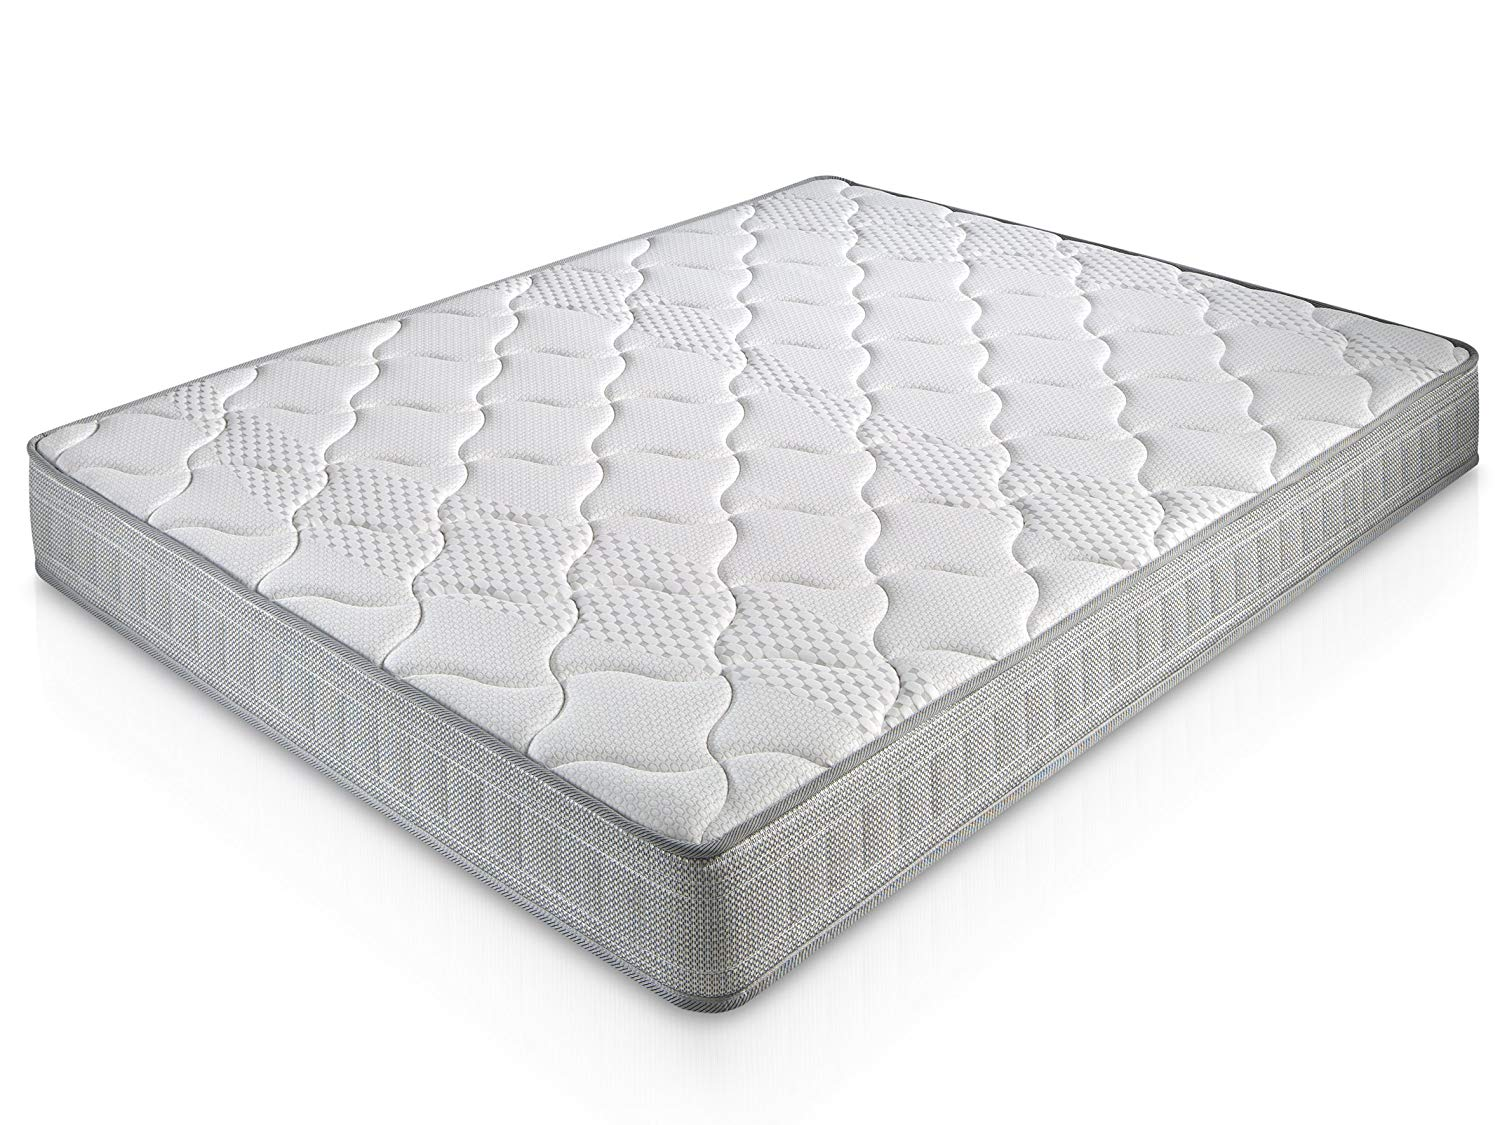 matelas 160x200 a memoire de forme